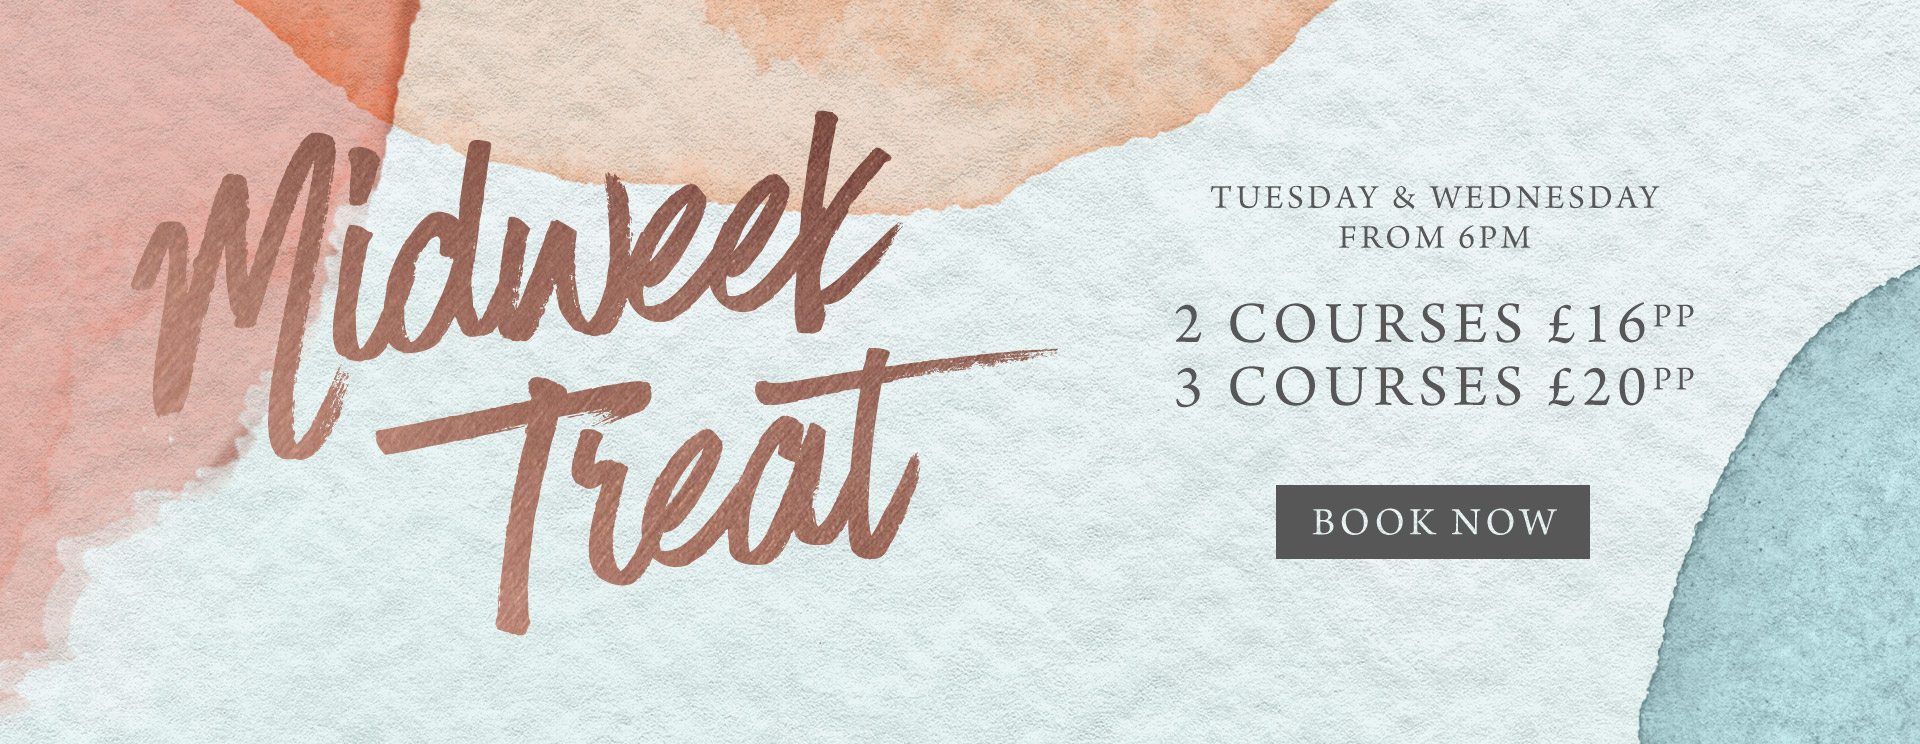 Midweek treat at The Plough & Harrow - Book now